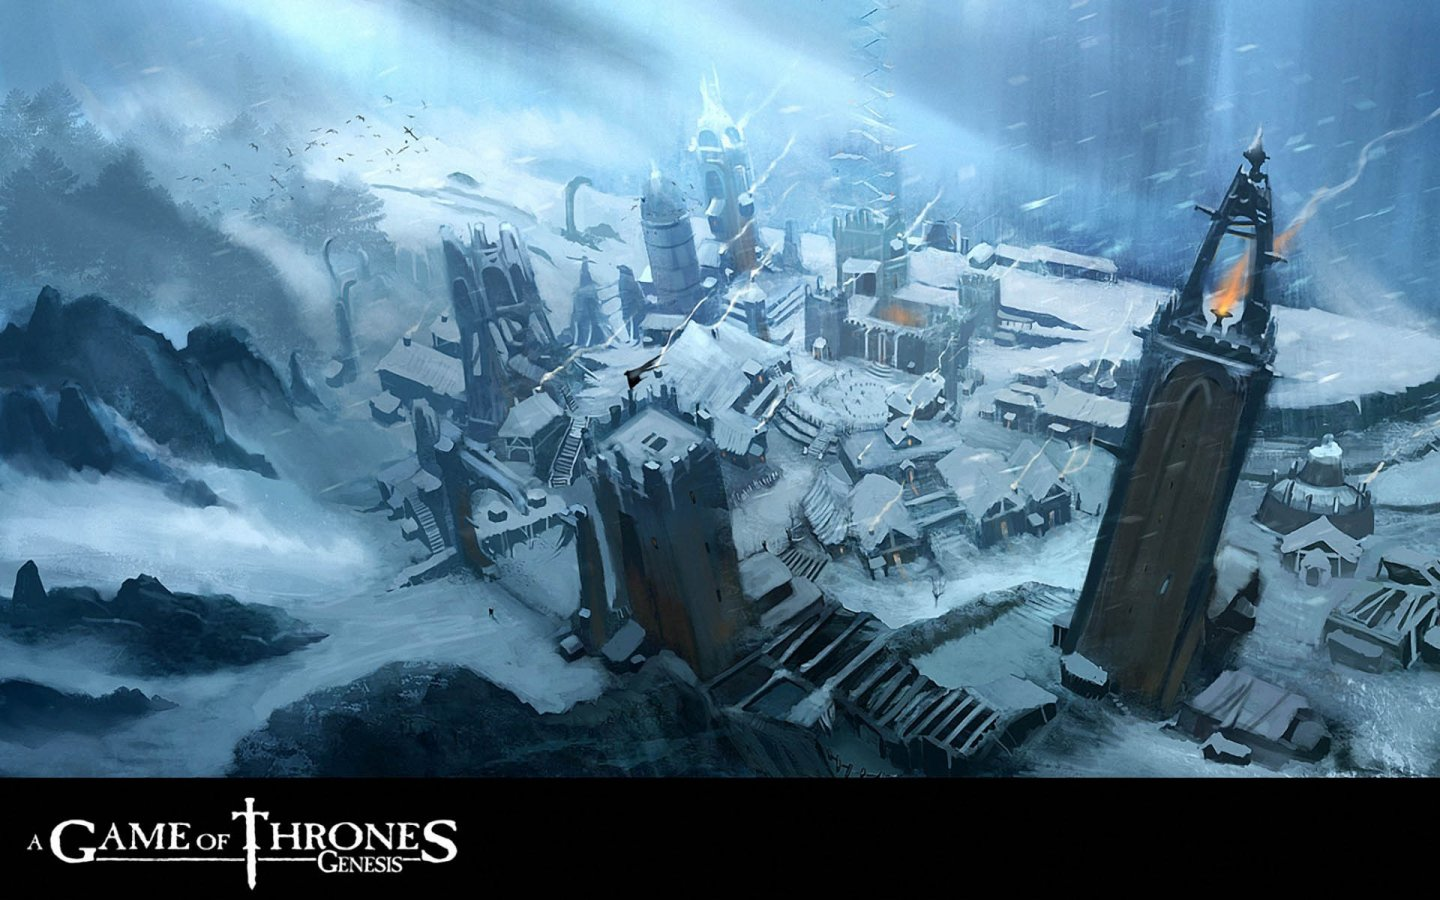 A Game Of Thrones Genesis Wallpaper - Castle Black In The Books - HD Wallpaper